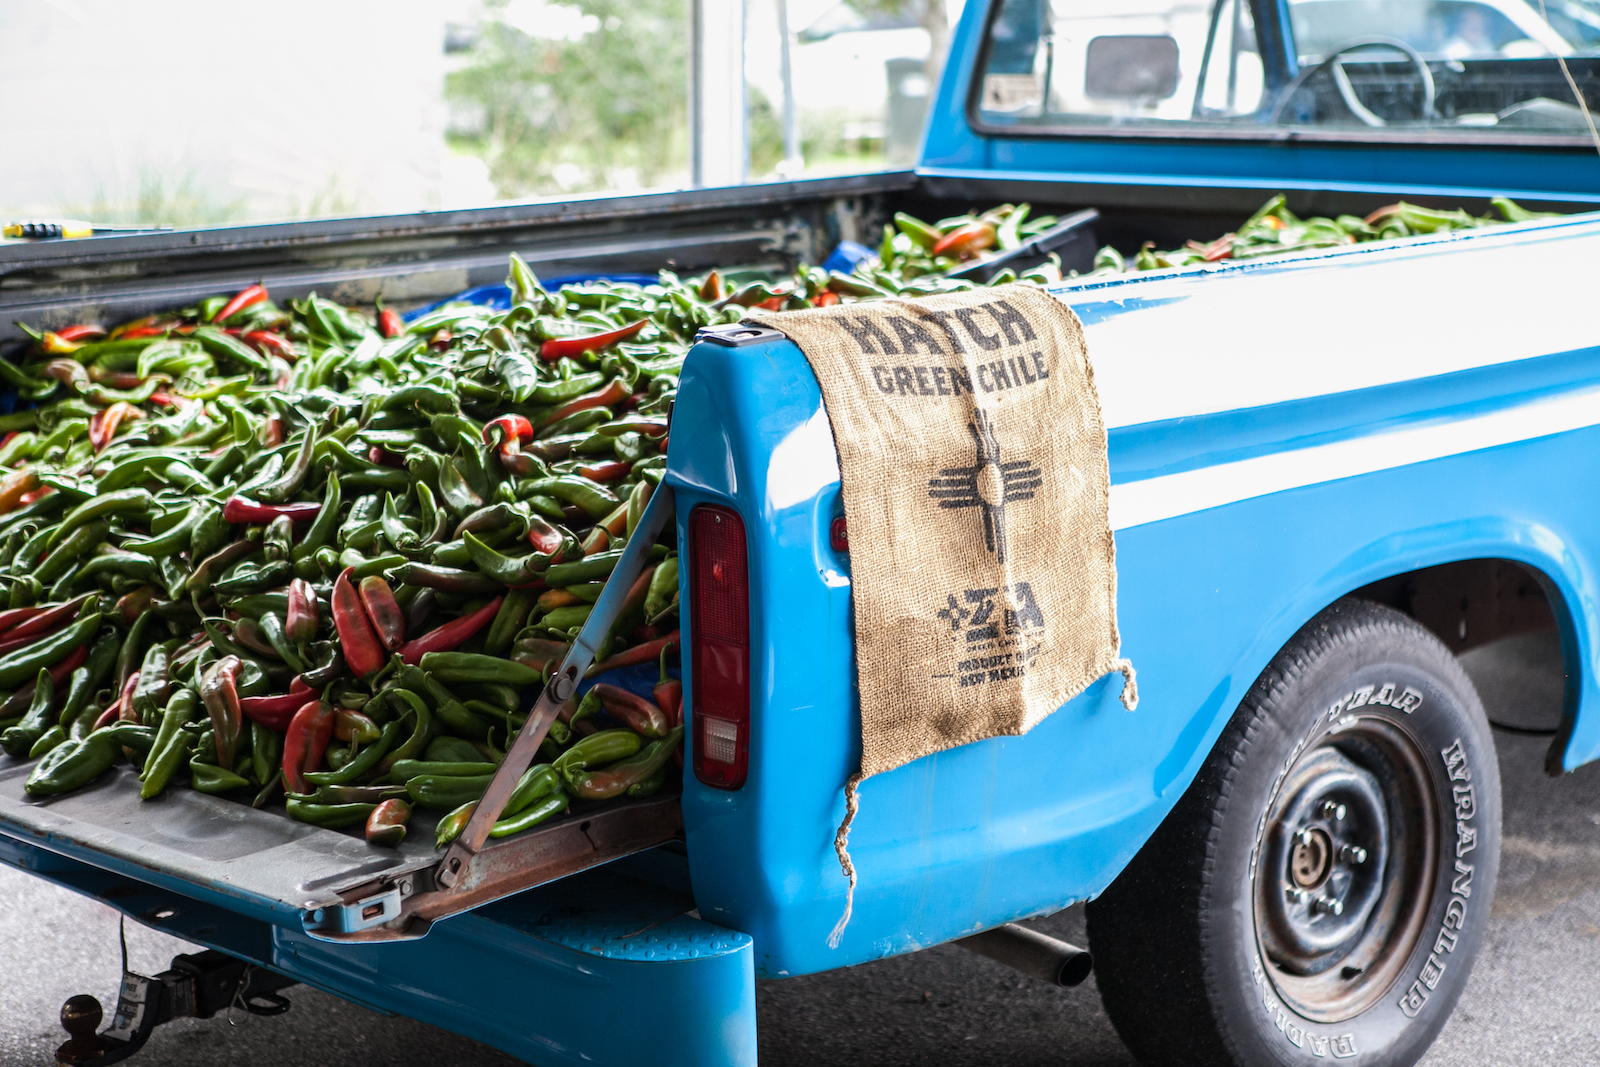 John Lewis of Lewis Barbecue will be trucking in 3,000 pounds of chile peppers all the way from Hatch, New Mexico, for his Oct. 10 chile roast